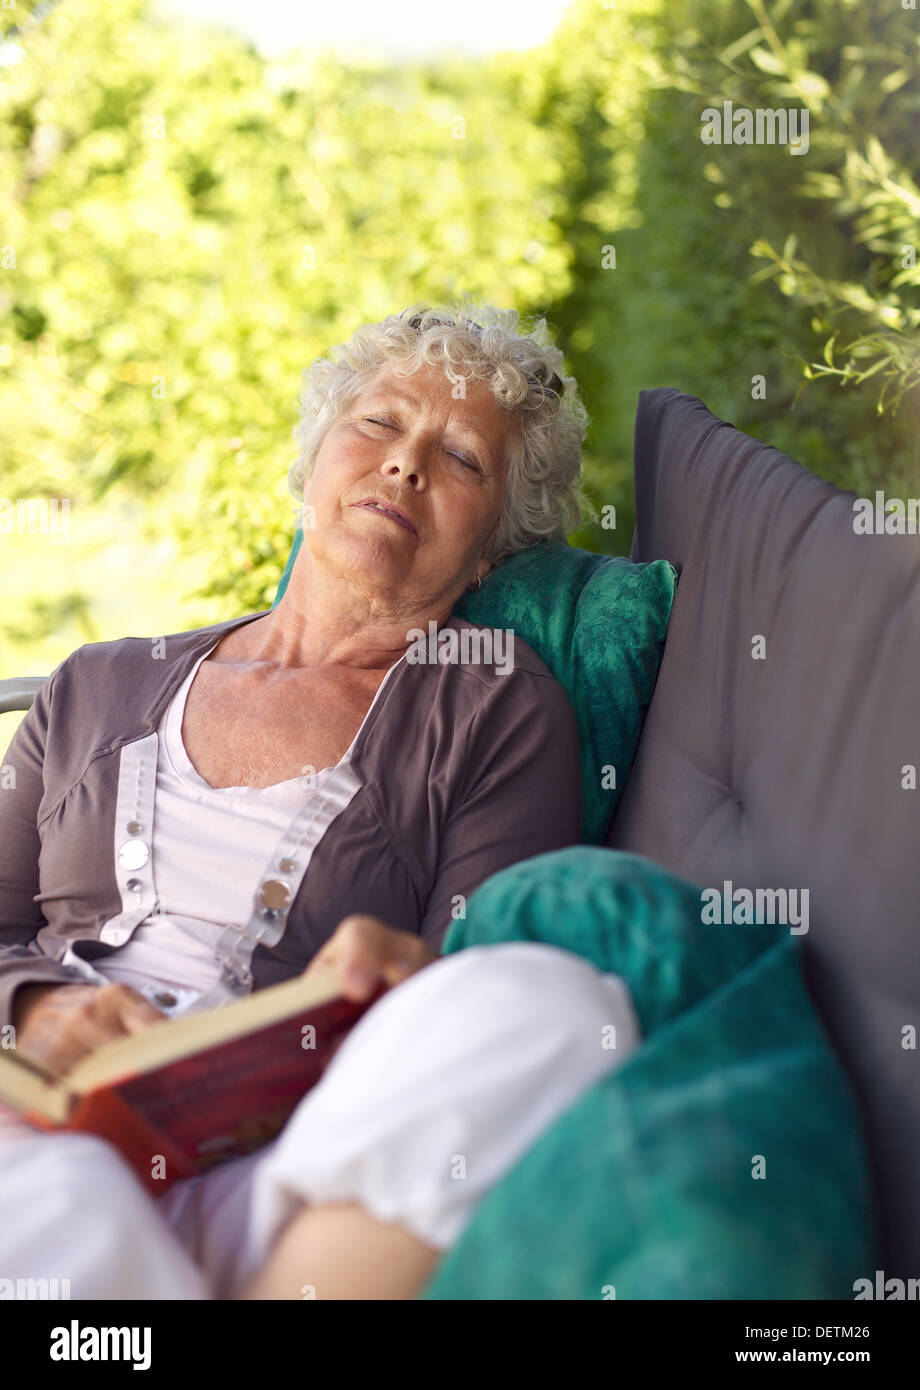 Senor woman sitting on lounge chair with a book and talking a nap. Senior lady sleeping in backyard with a novel - Stock Image